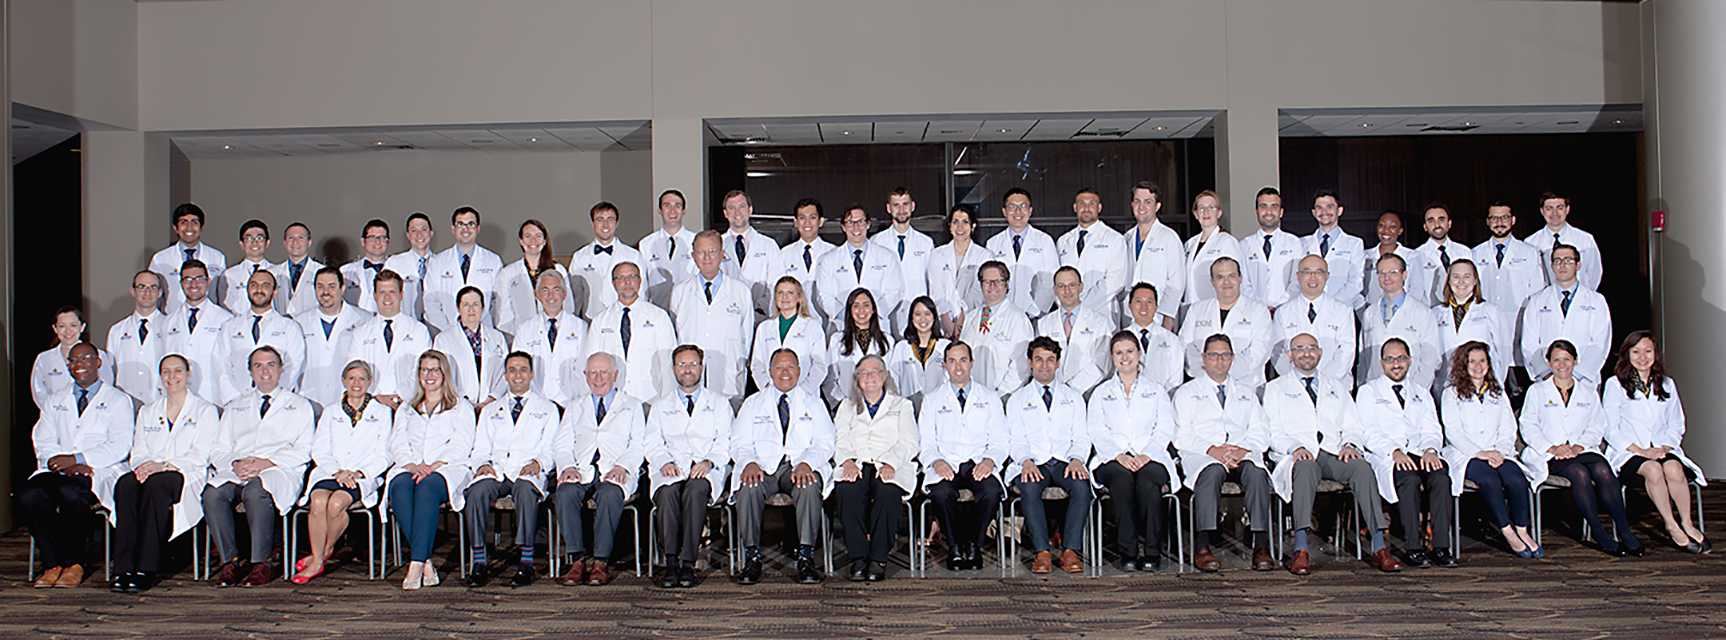 Department of surgery faculty picture